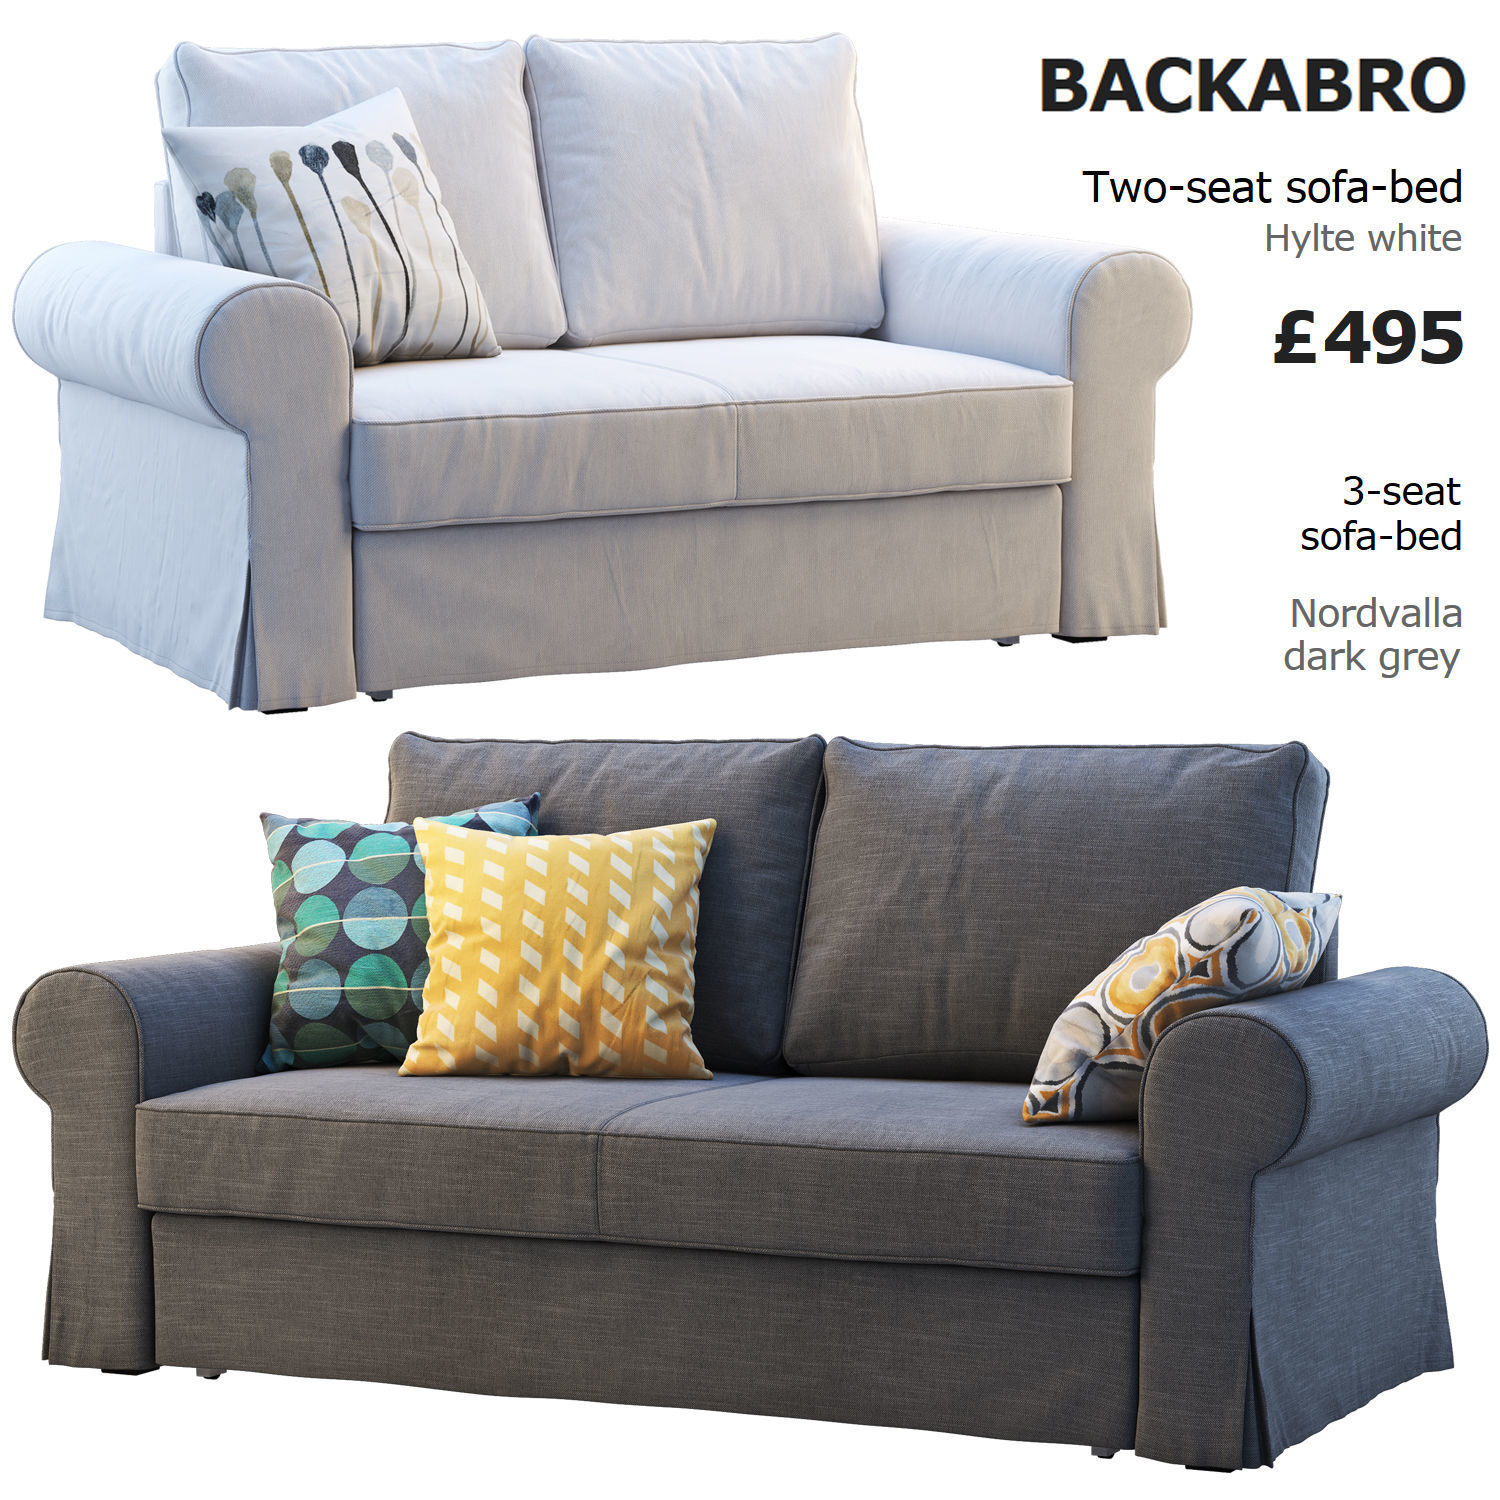 Backabro Ecksofa Luxury Ikea Backabro 1 3d Cgtrader